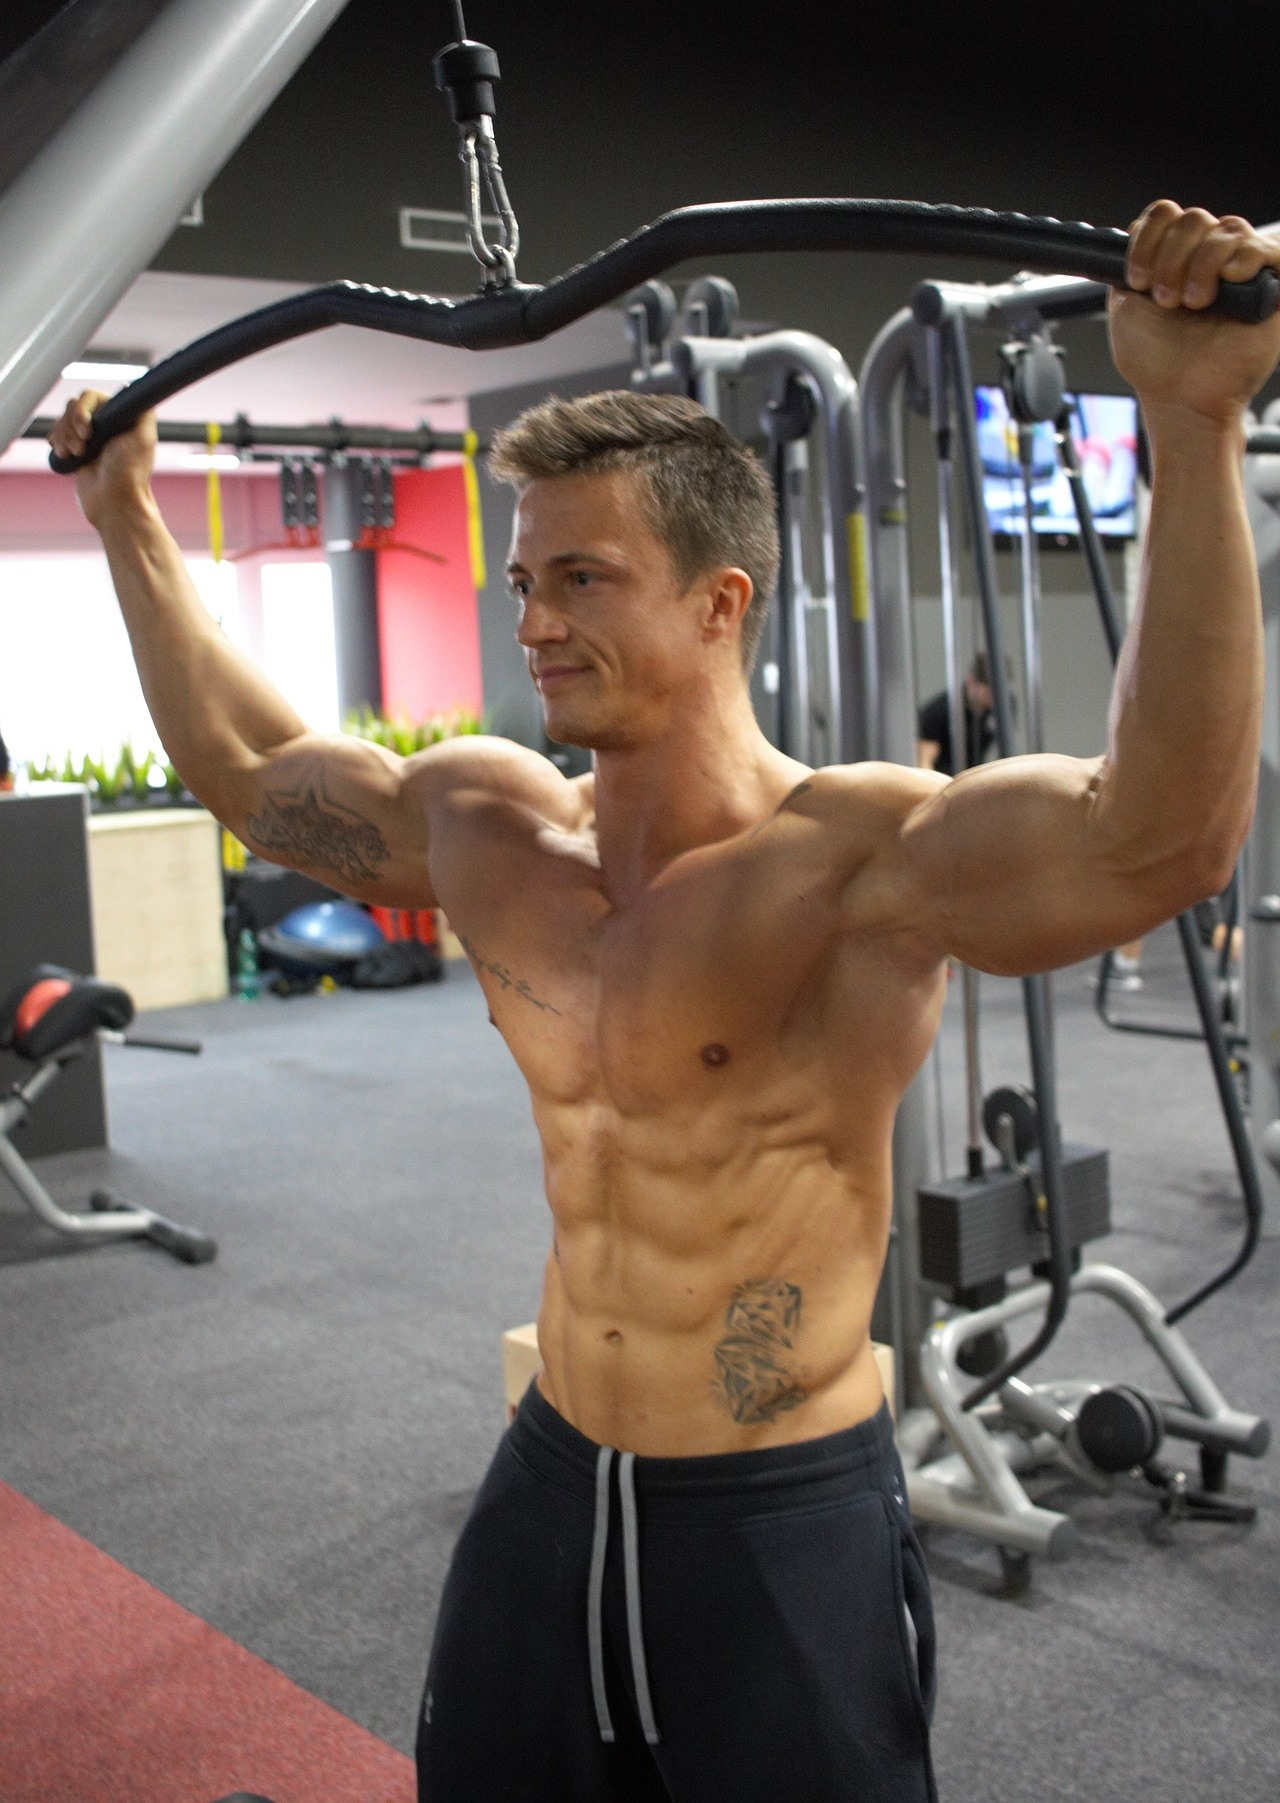 How to Get Back into Bodybuilding with Grade 2 AC Separation